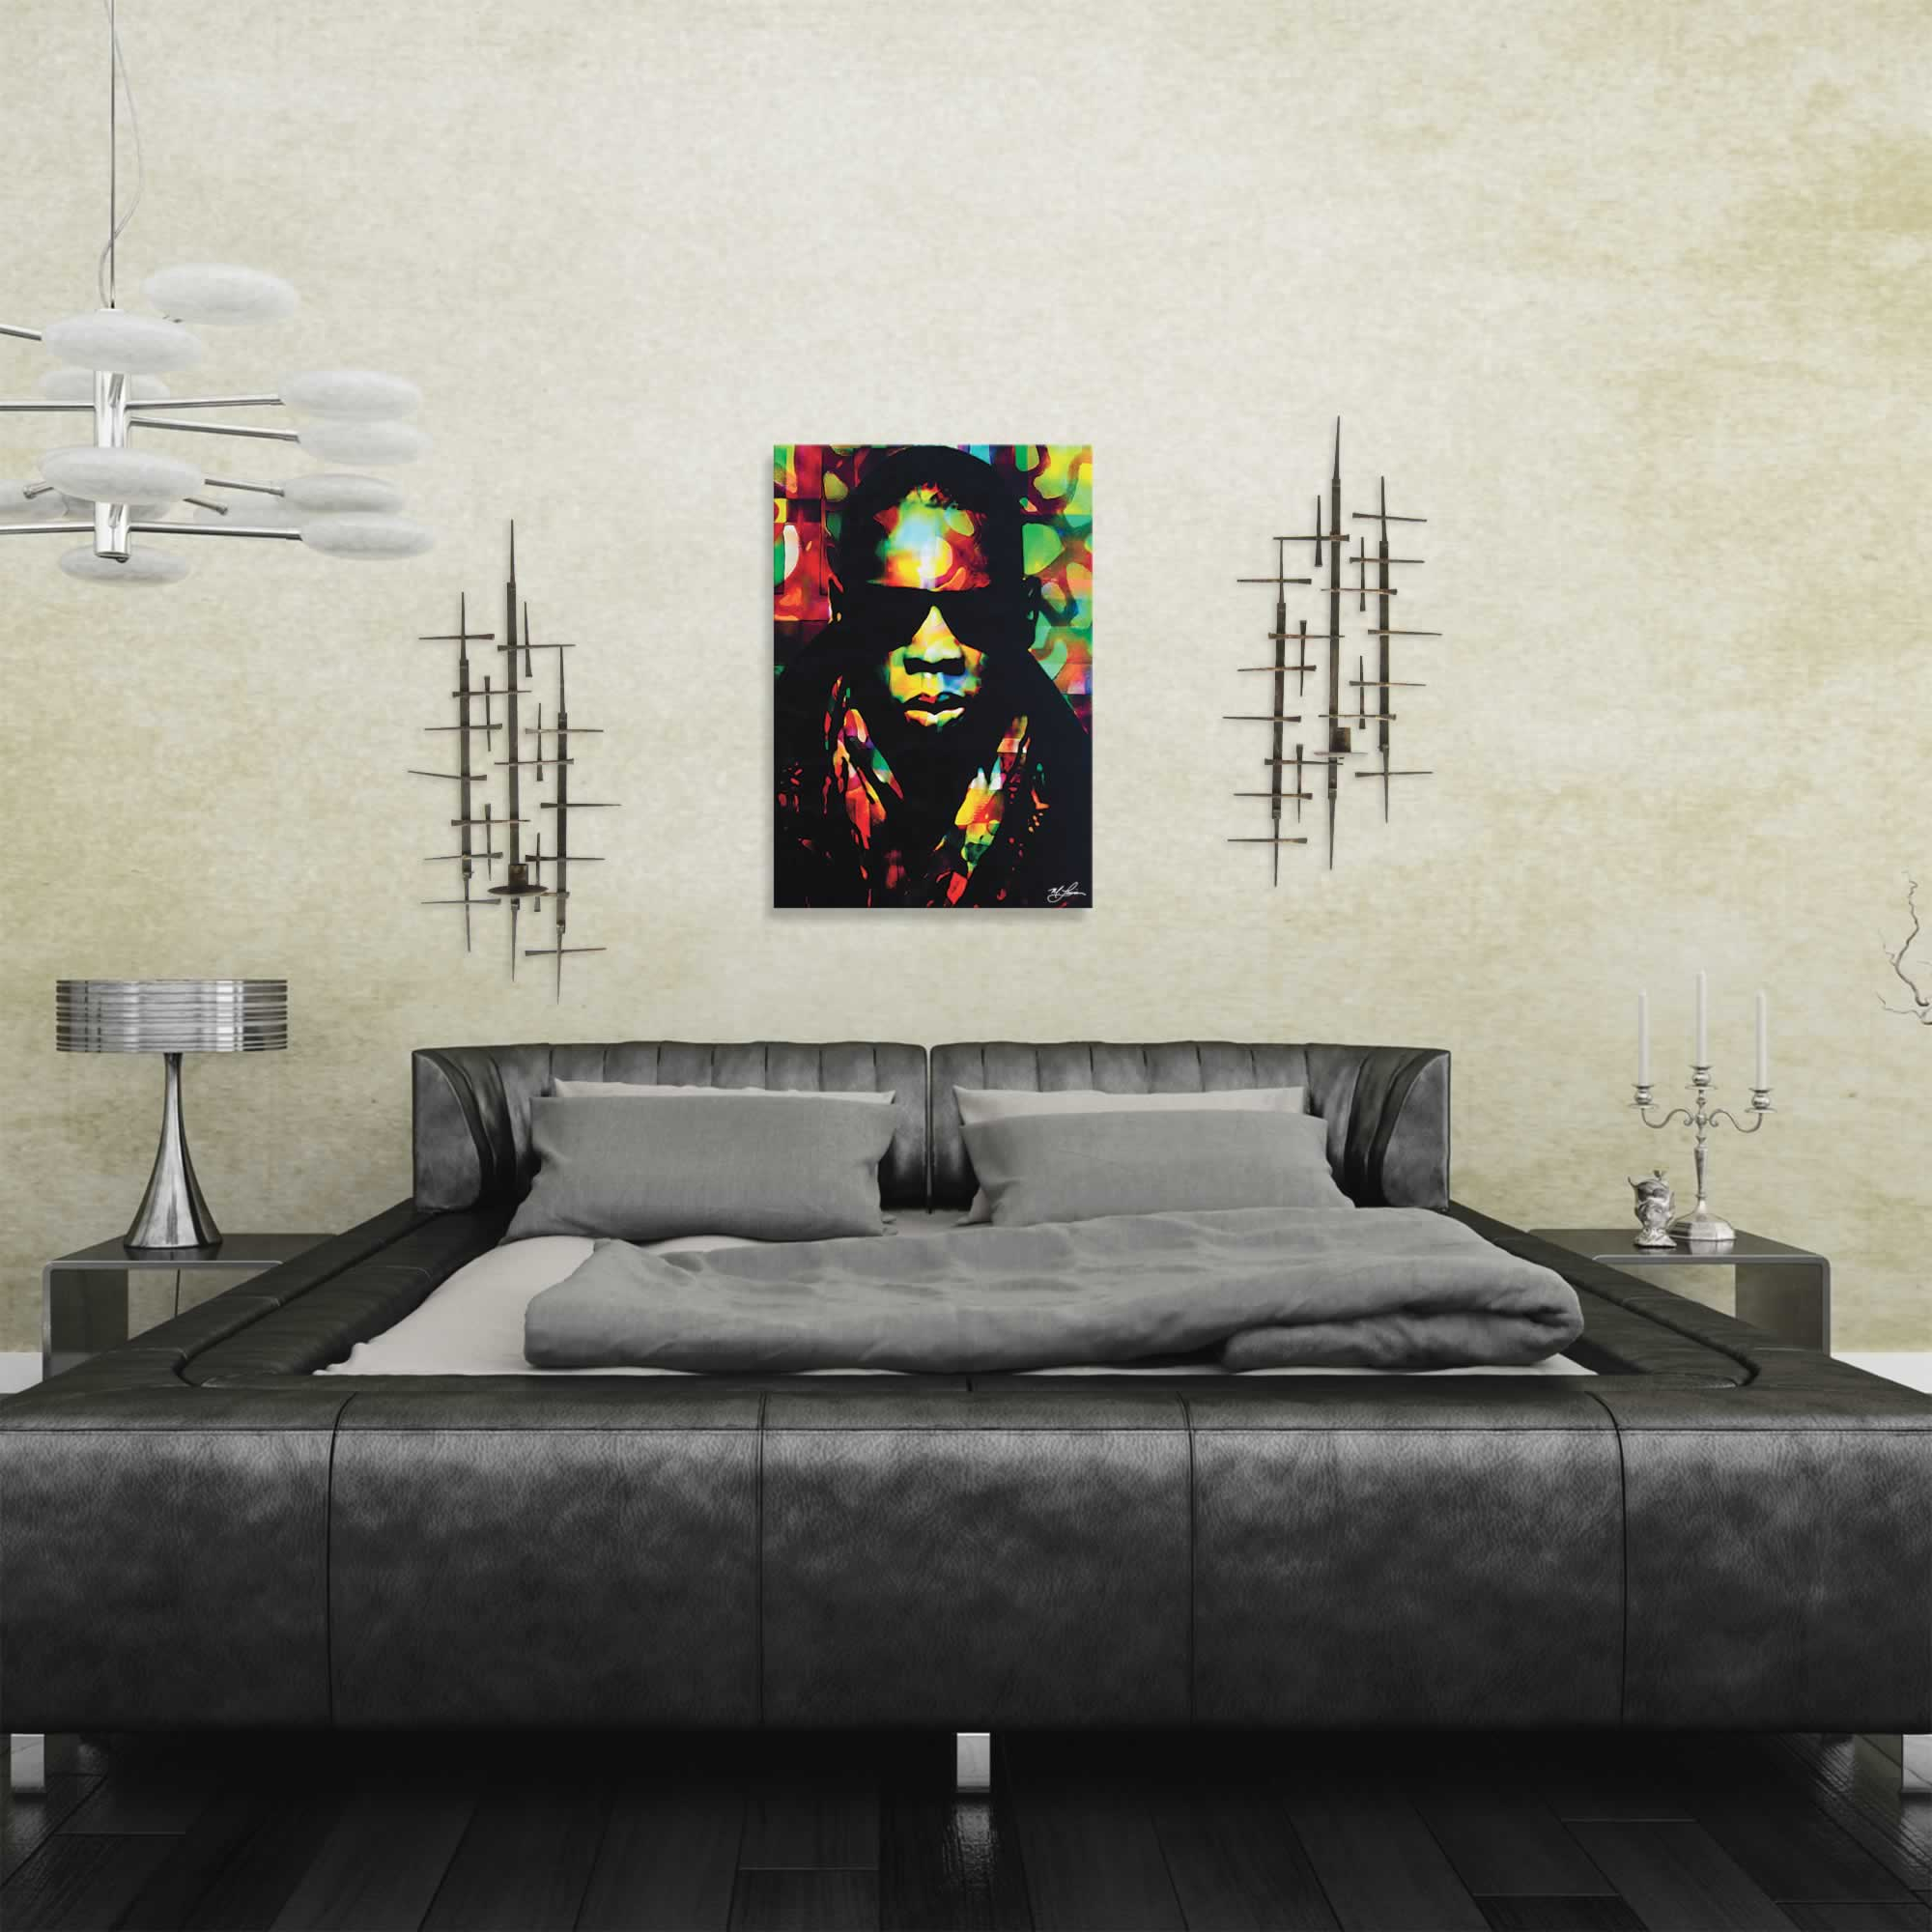 Jay Z Color of a CEO | Pop Art Painting by Mark Lewis, Signed & Numbered Limited Edition - ML0015